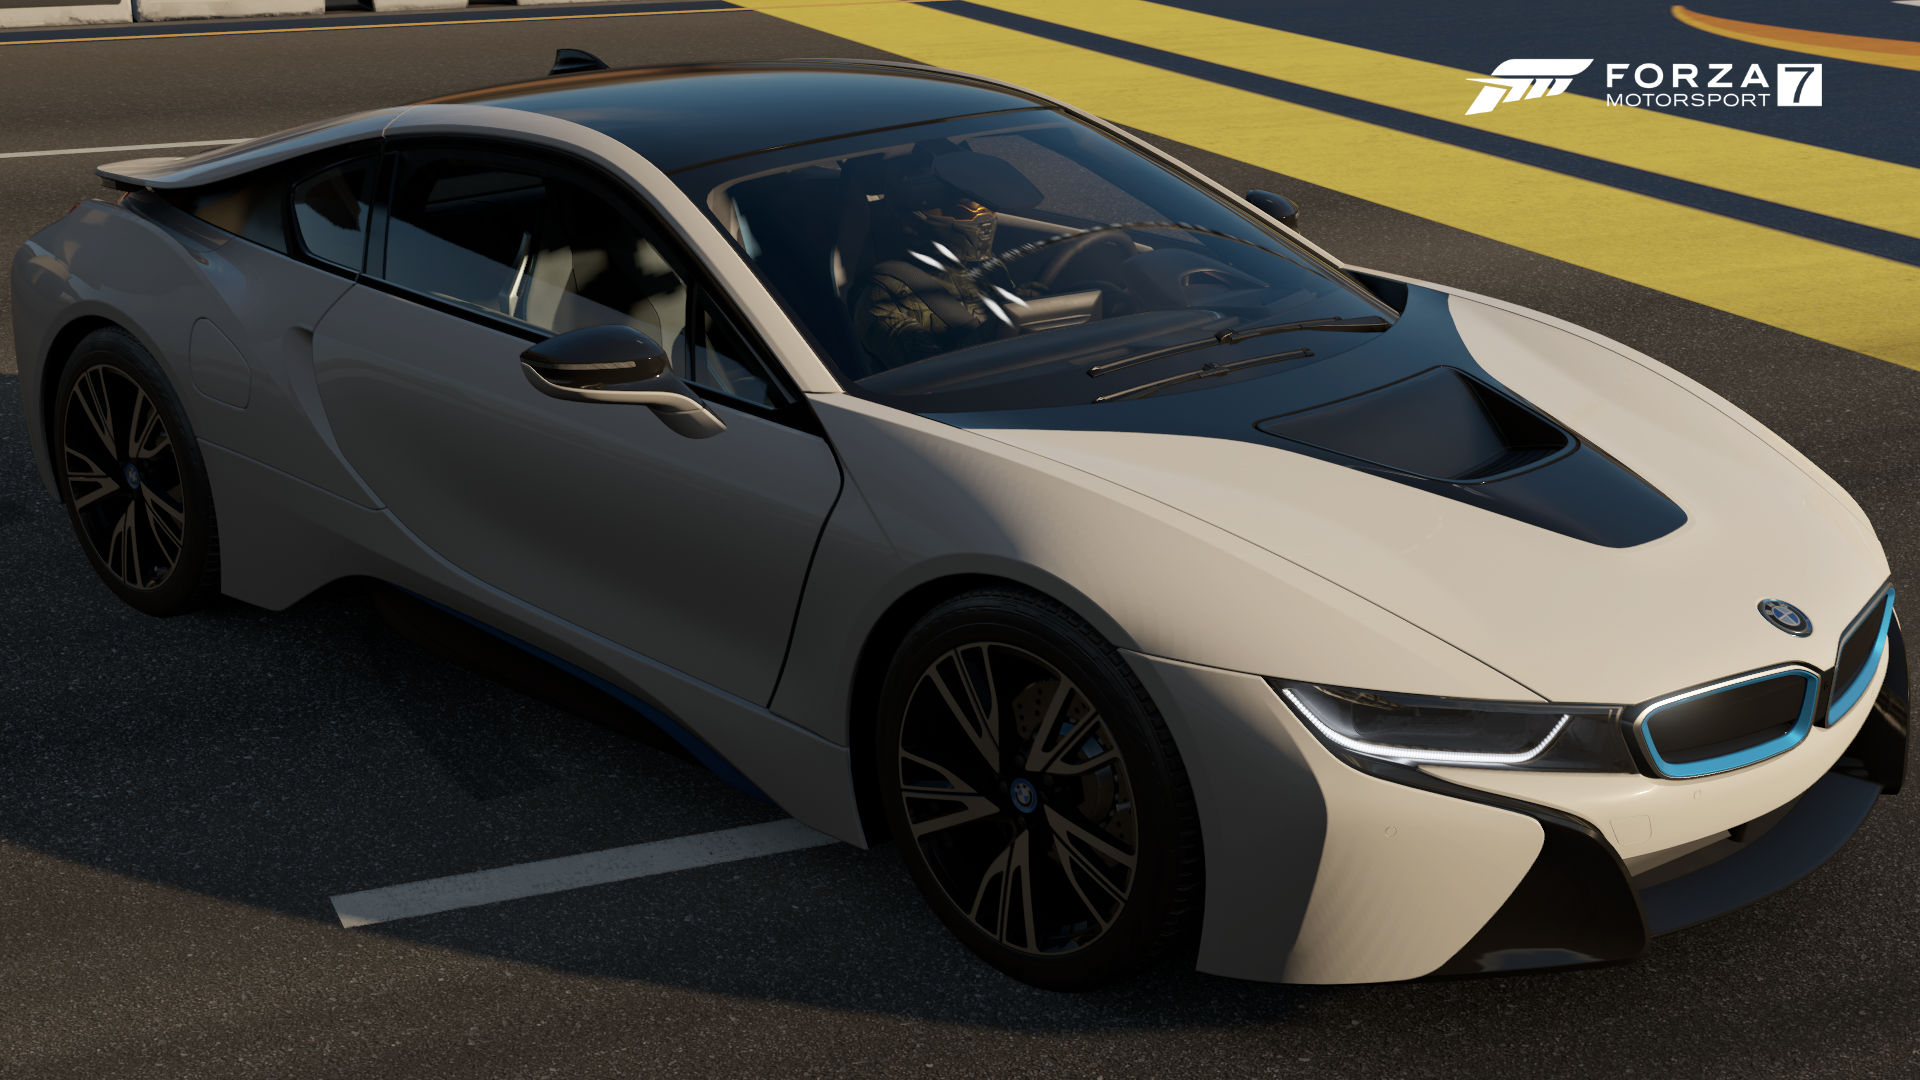 Bmw I8 Forza Motorsport Wiki Fandom Powered By Wikia